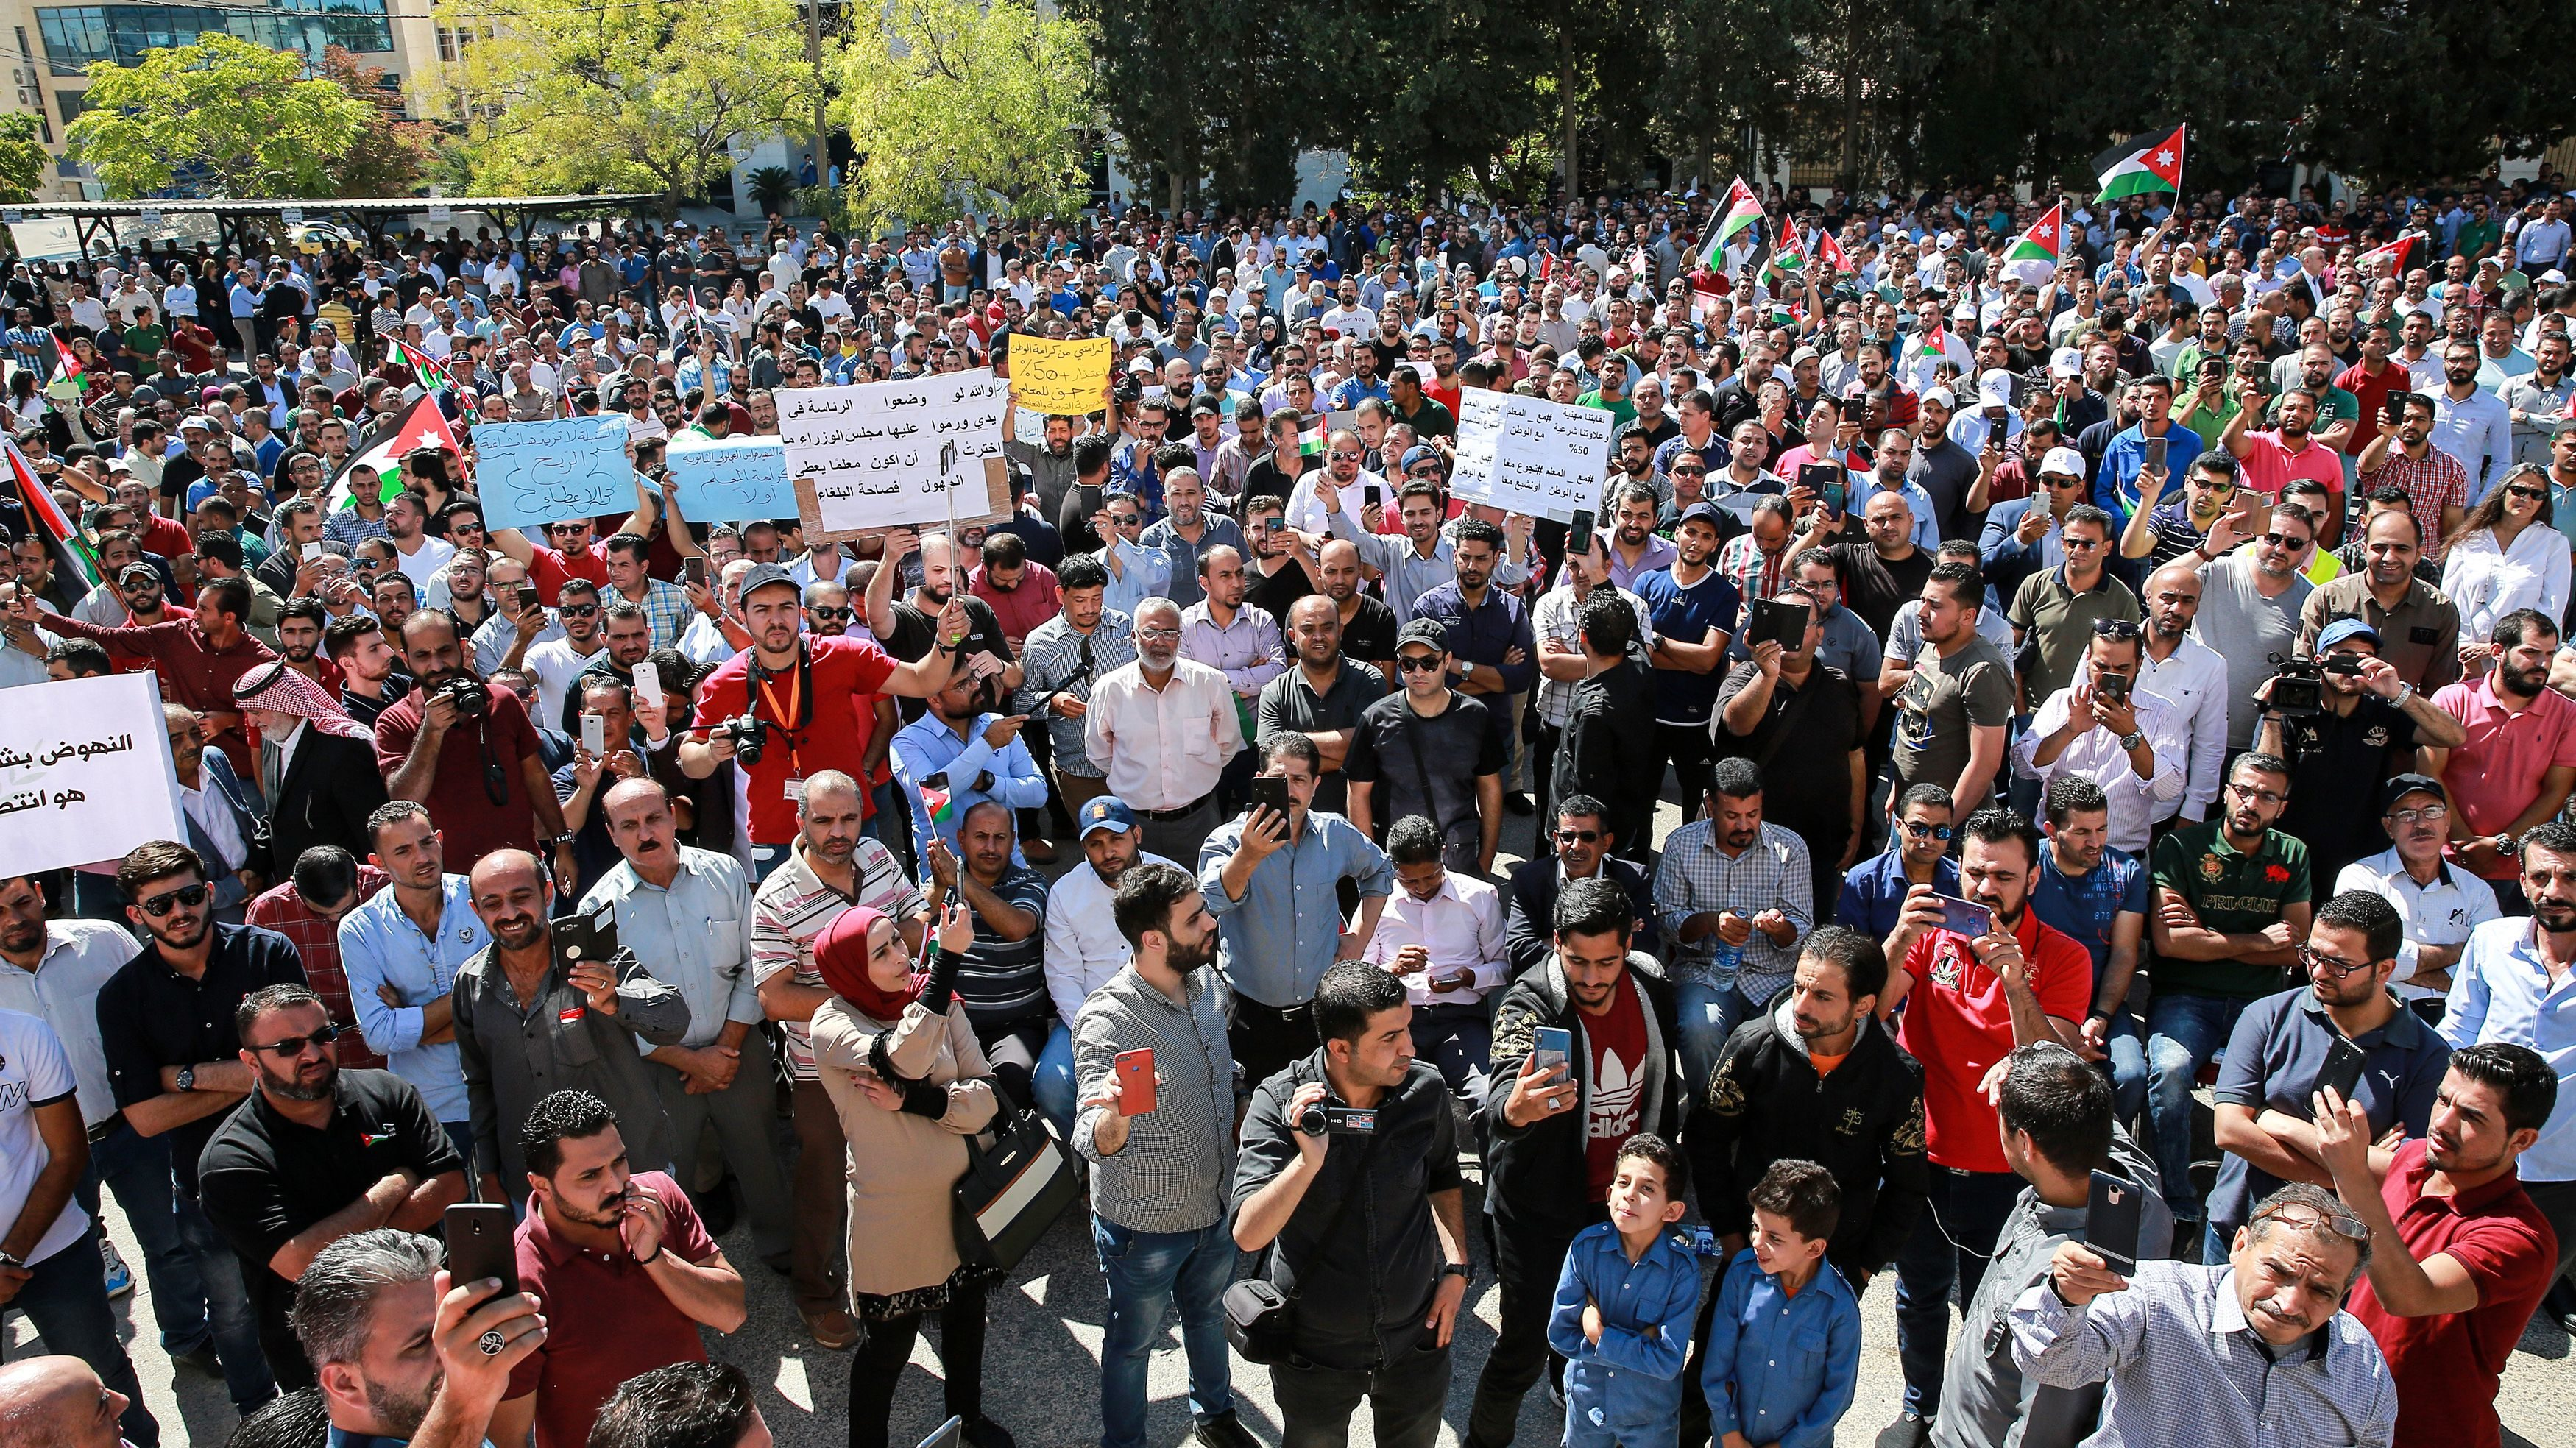 Jordanian Government Reaches Deal with Teachers, Ending Strike